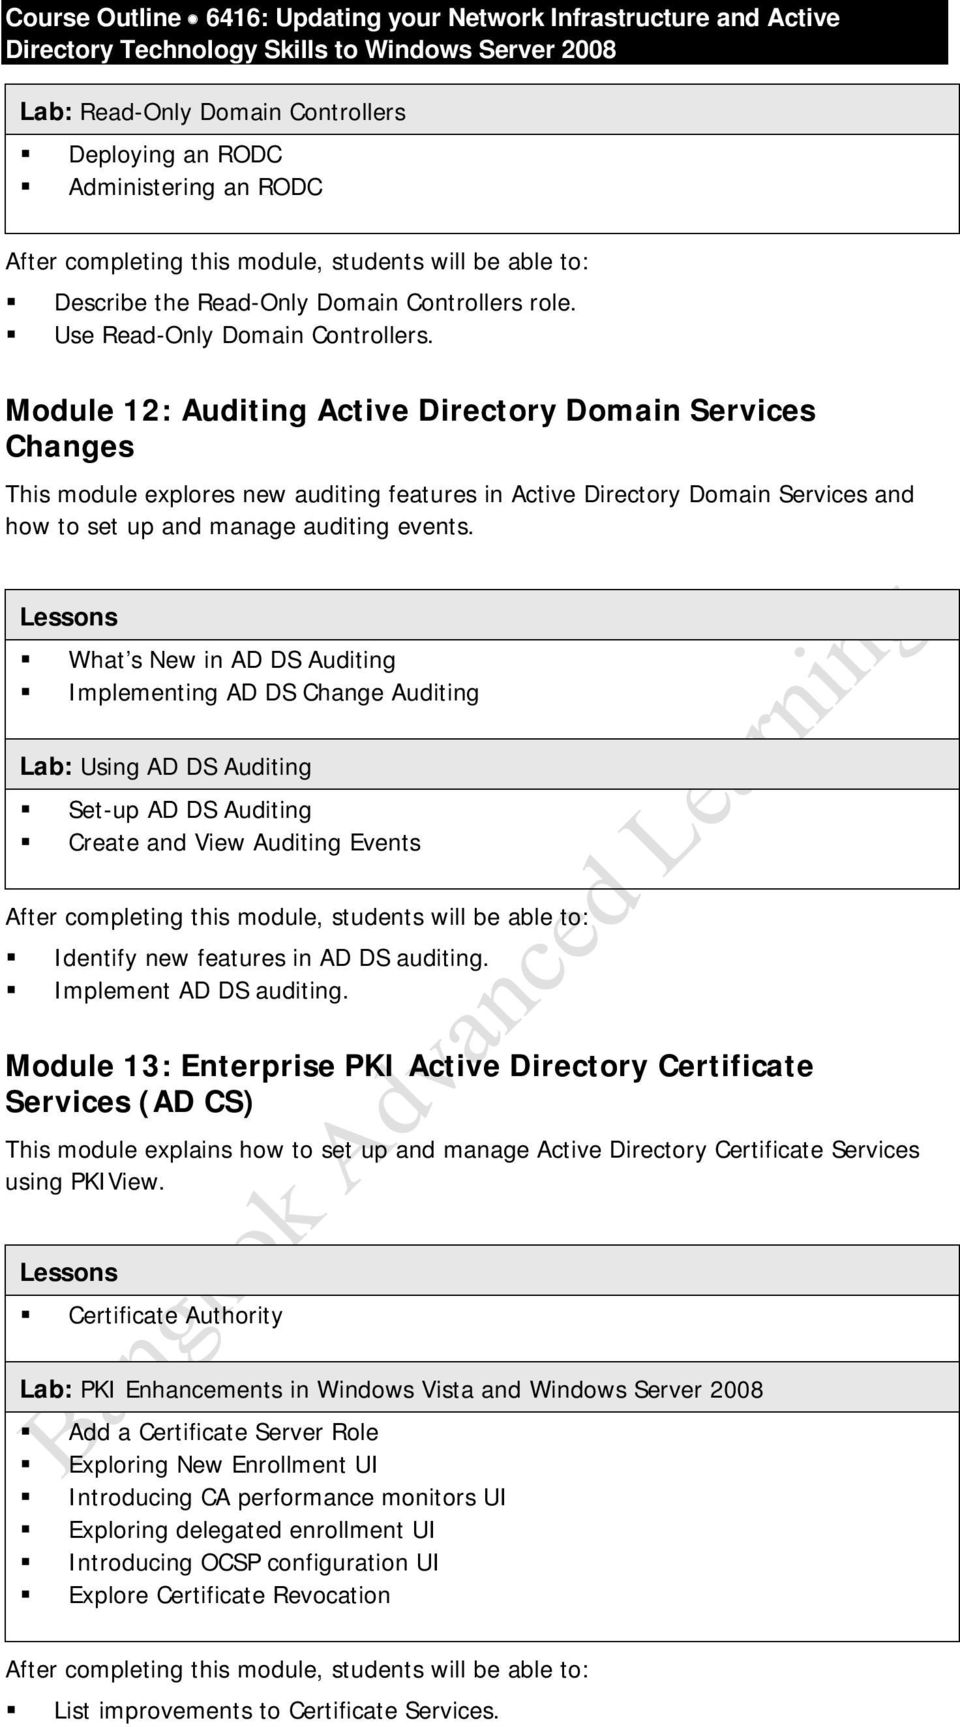 What s New in AD DS Auditing Implementing AD DS Change Auditing Lab: Using AD DS Auditing Set-up AD DS Auditing Create and View Auditing Events Identify new features in AD DS auditing.